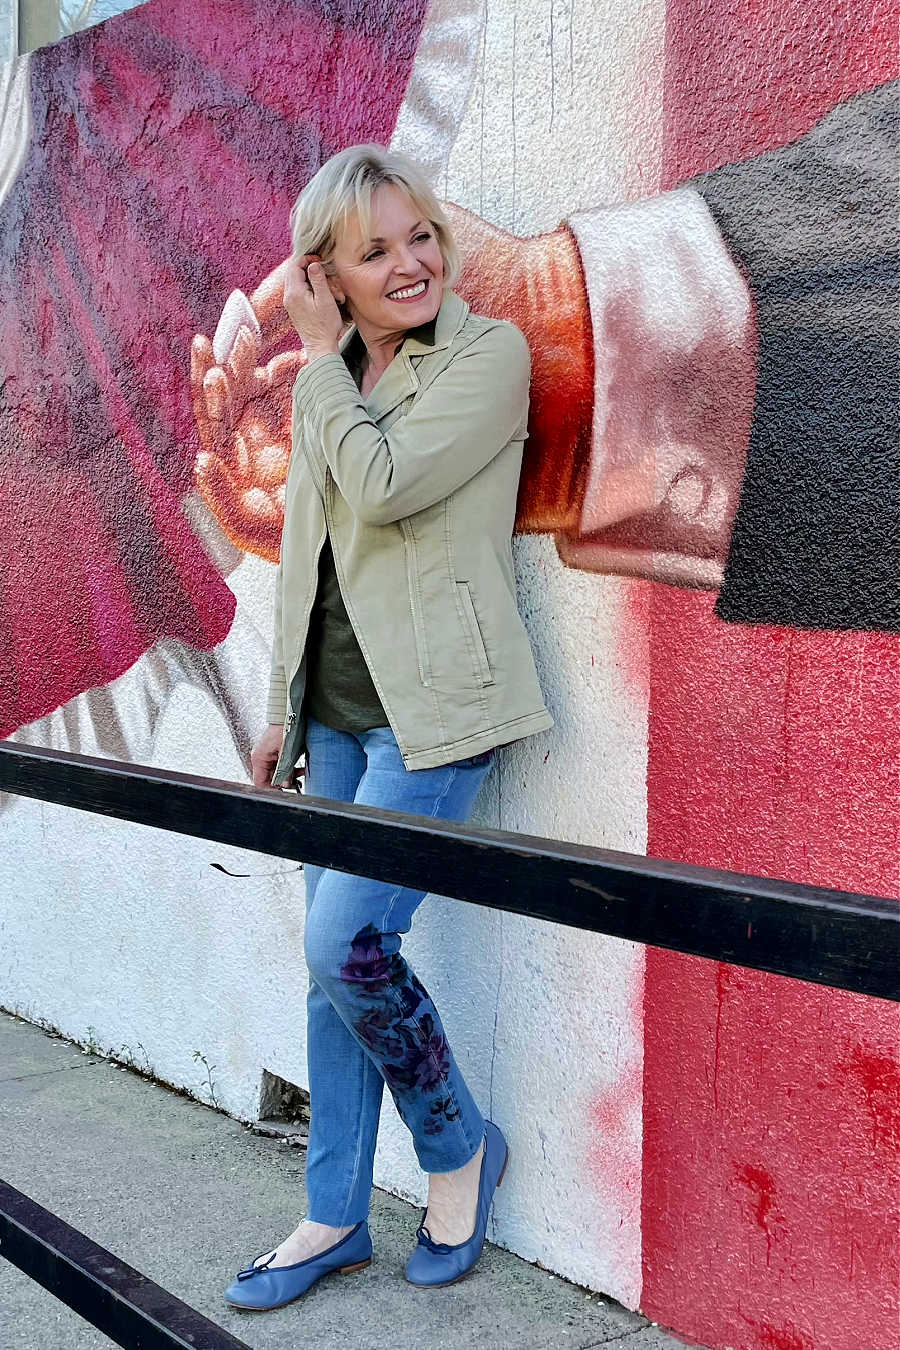 woman leaning against wall with mural of large hand